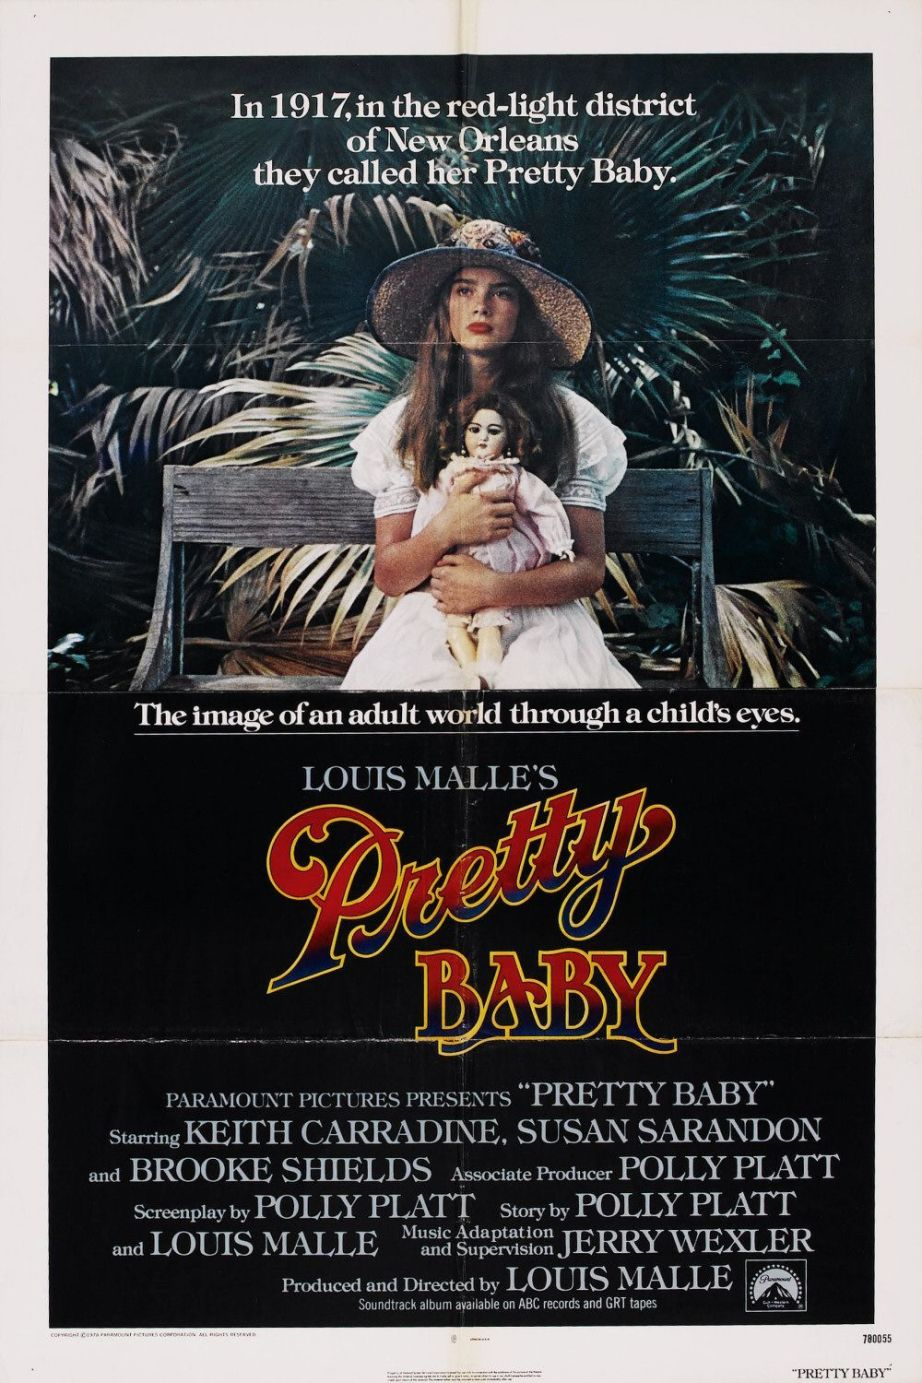 Louis Malle's 1978 film, Pretty Baby, created some controversy at the time it was released. But it never generated any legal doubts that Brooke Shields was exploited. It remains a potent film, that feels suspect.